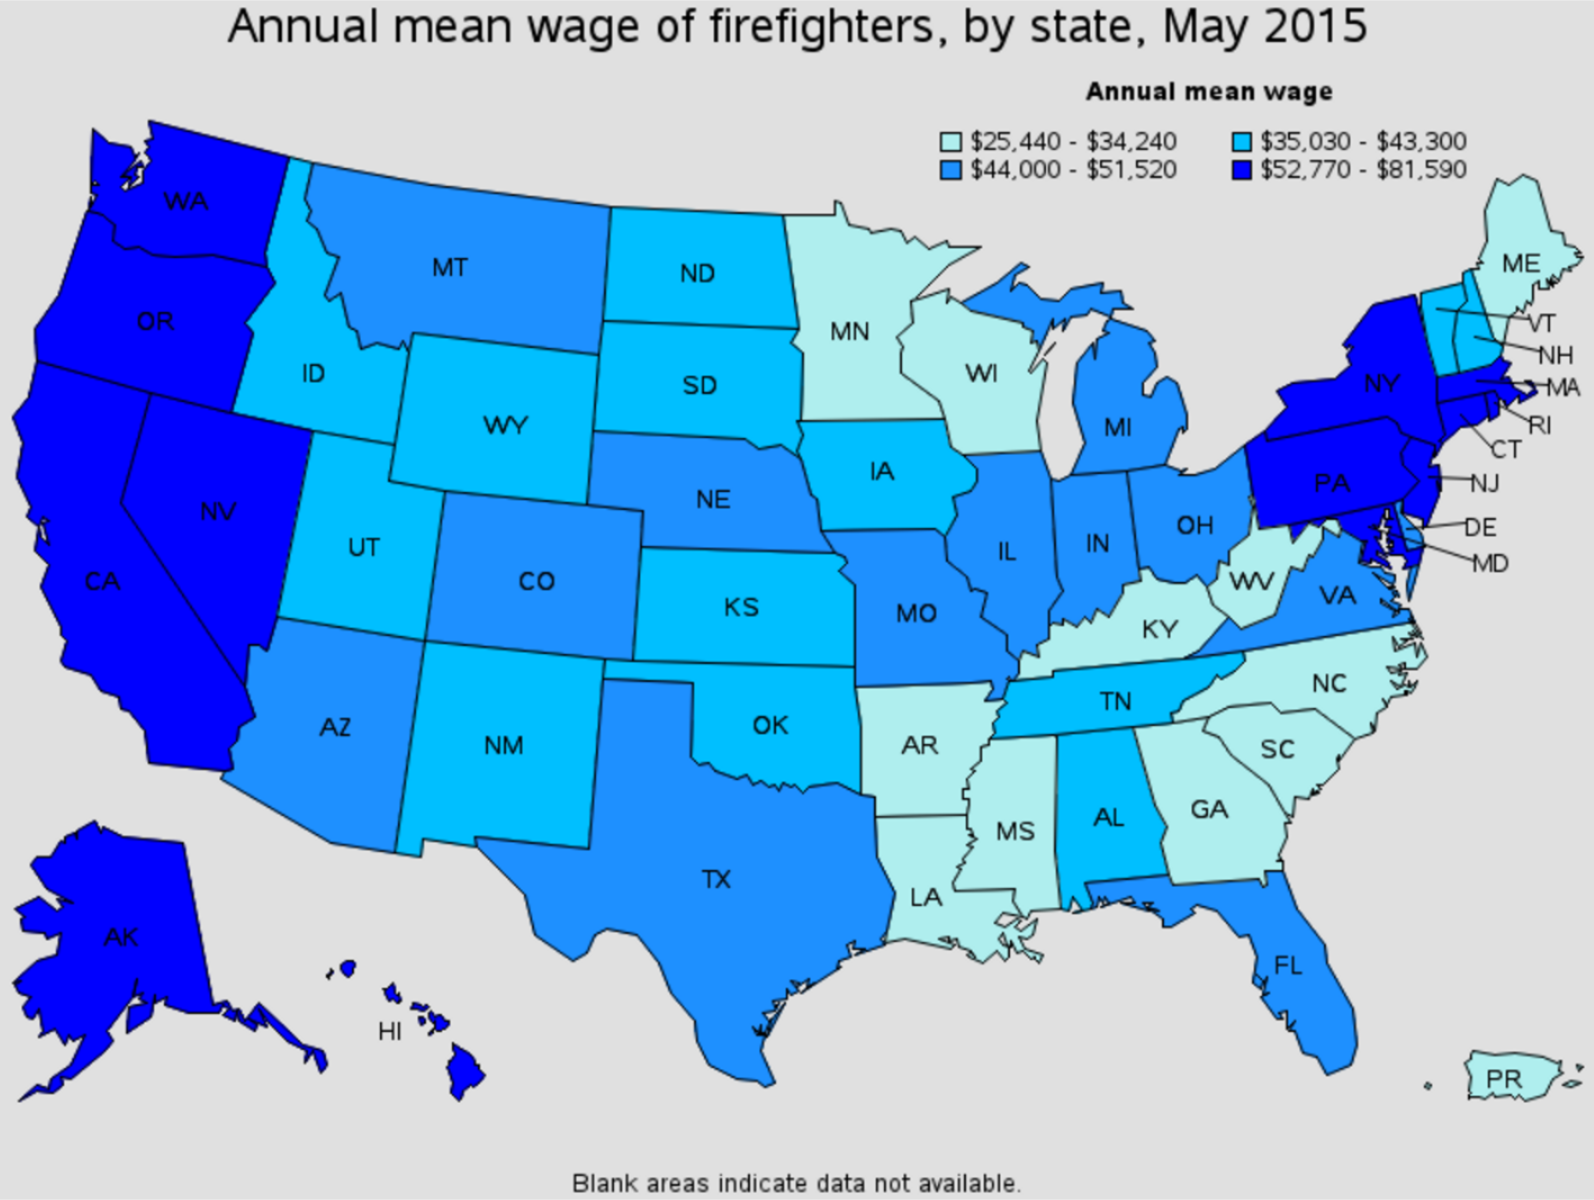 firefighter average salary by state Wrightstown Wisconsin